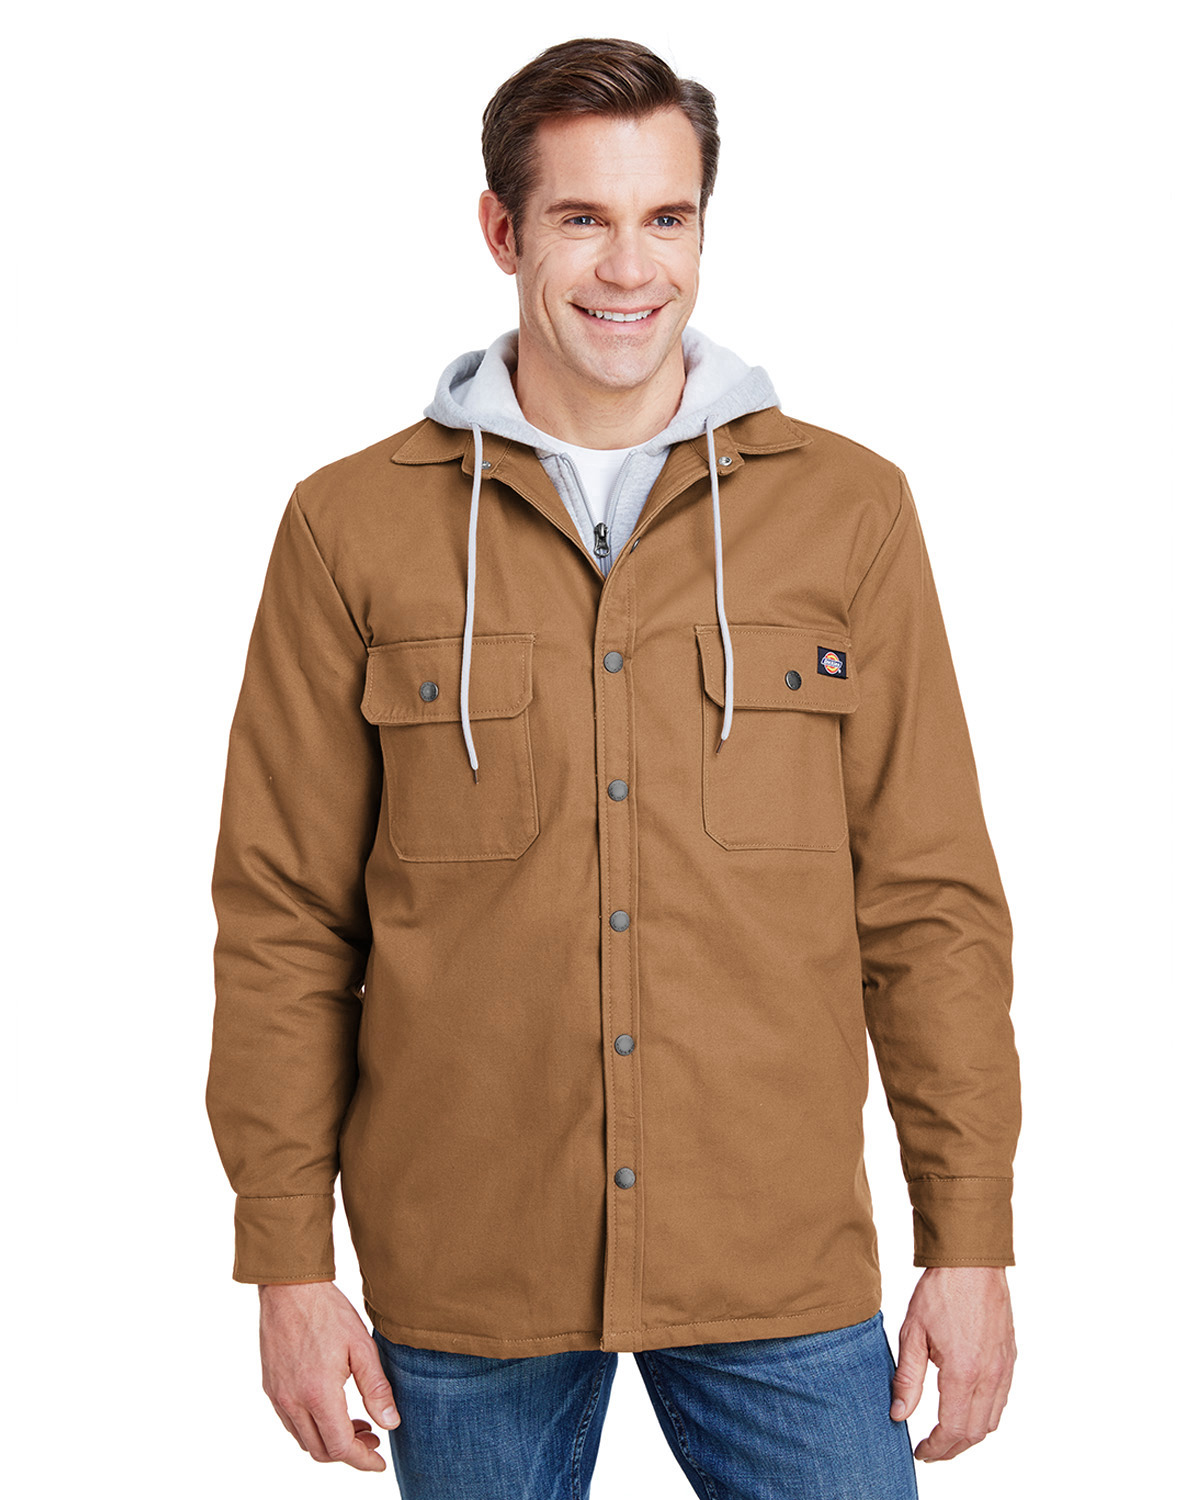 Men'S Hooded Duck Quilted Shirt Jacket